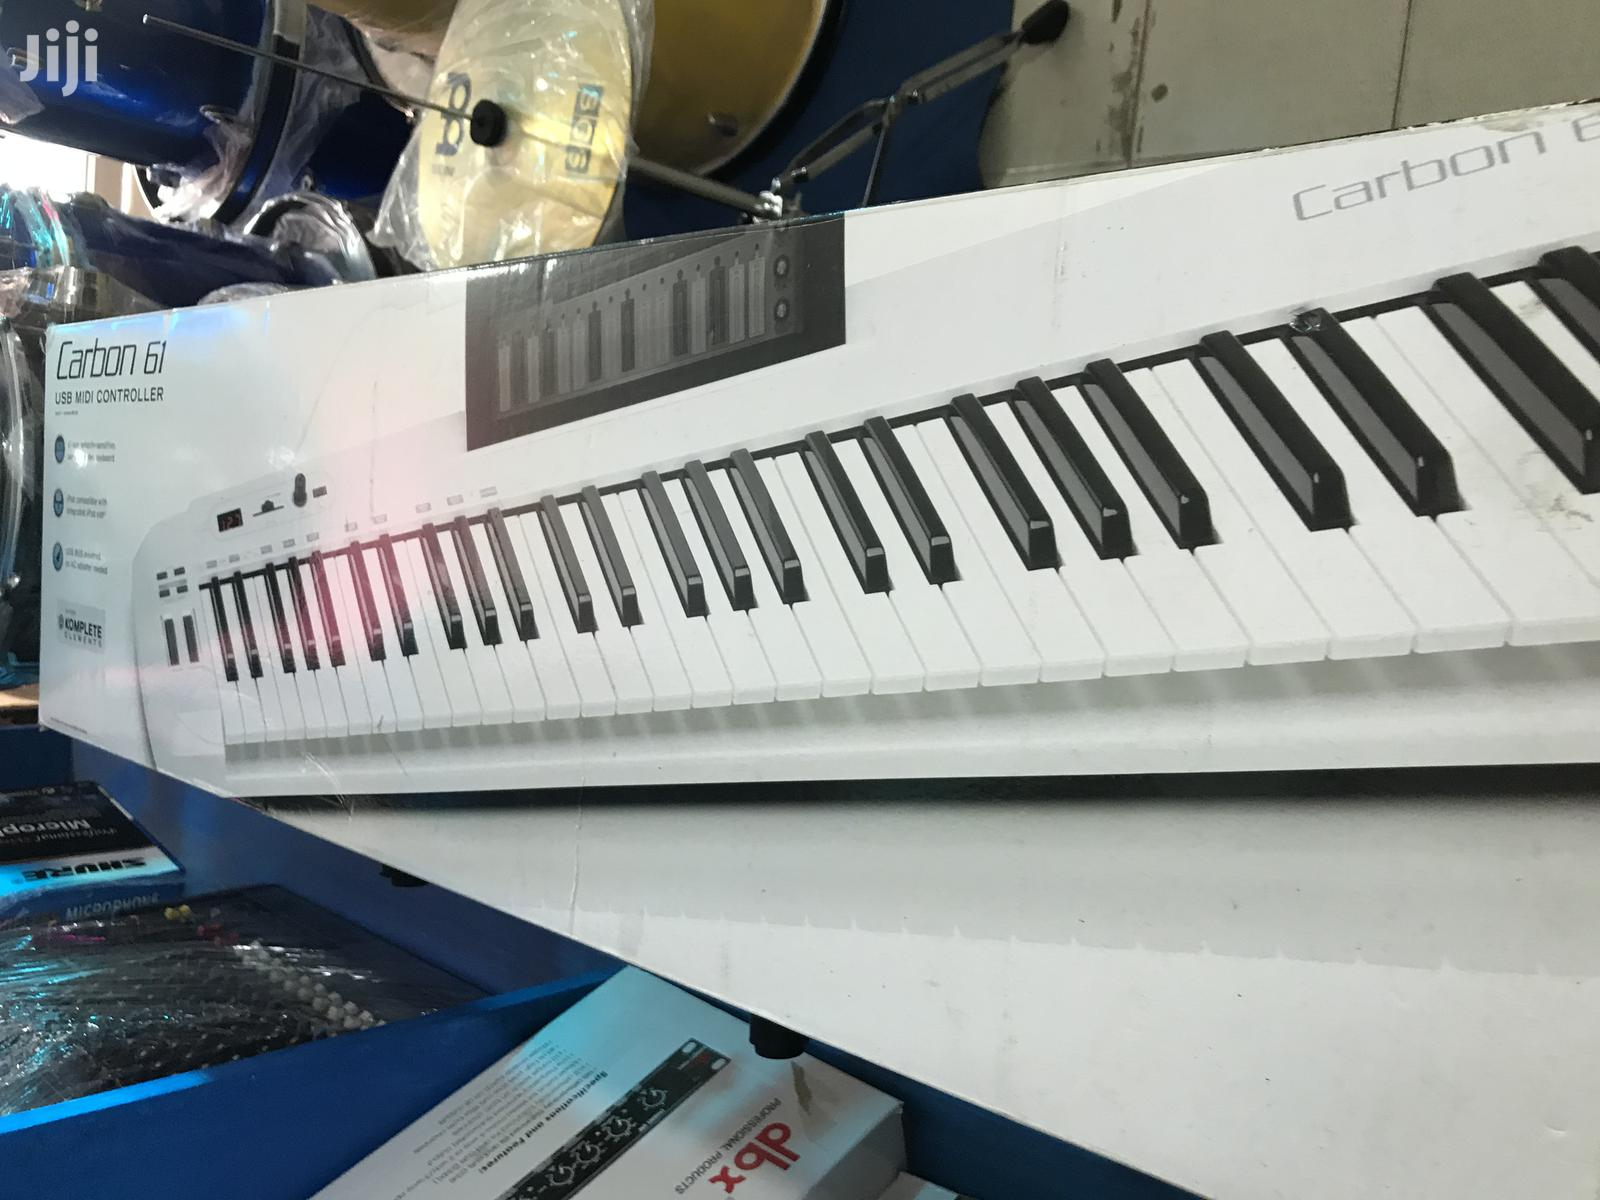 Samson Carbon 61 | Musical Instruments & Gear for sale in Accra Metropolitan, Greater Accra, Ghana